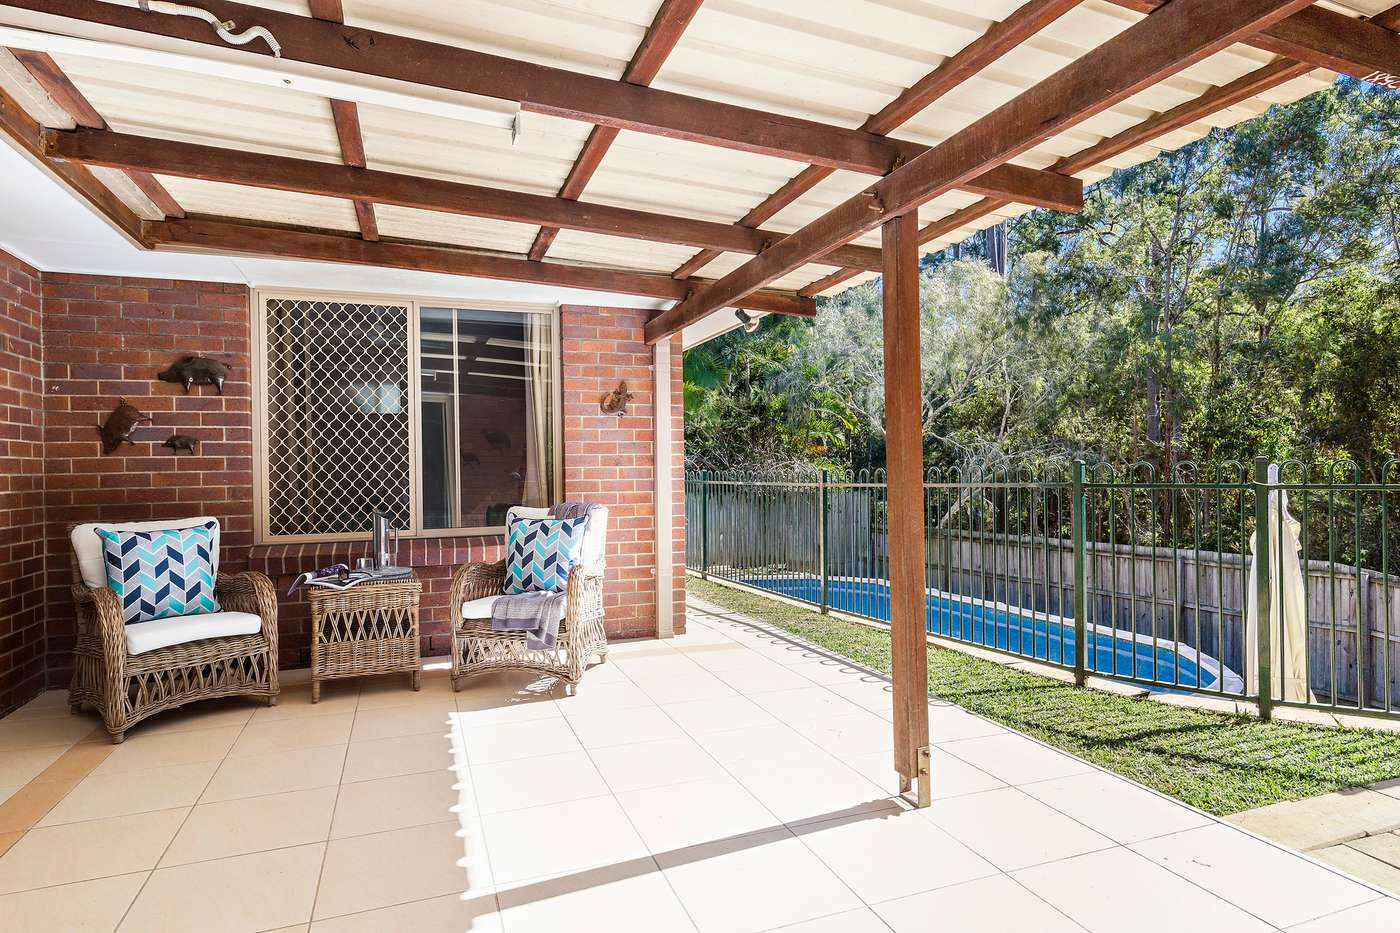 Main view of Homely house listing, 12 Pointer Court, Shailer Park, QLD 4128